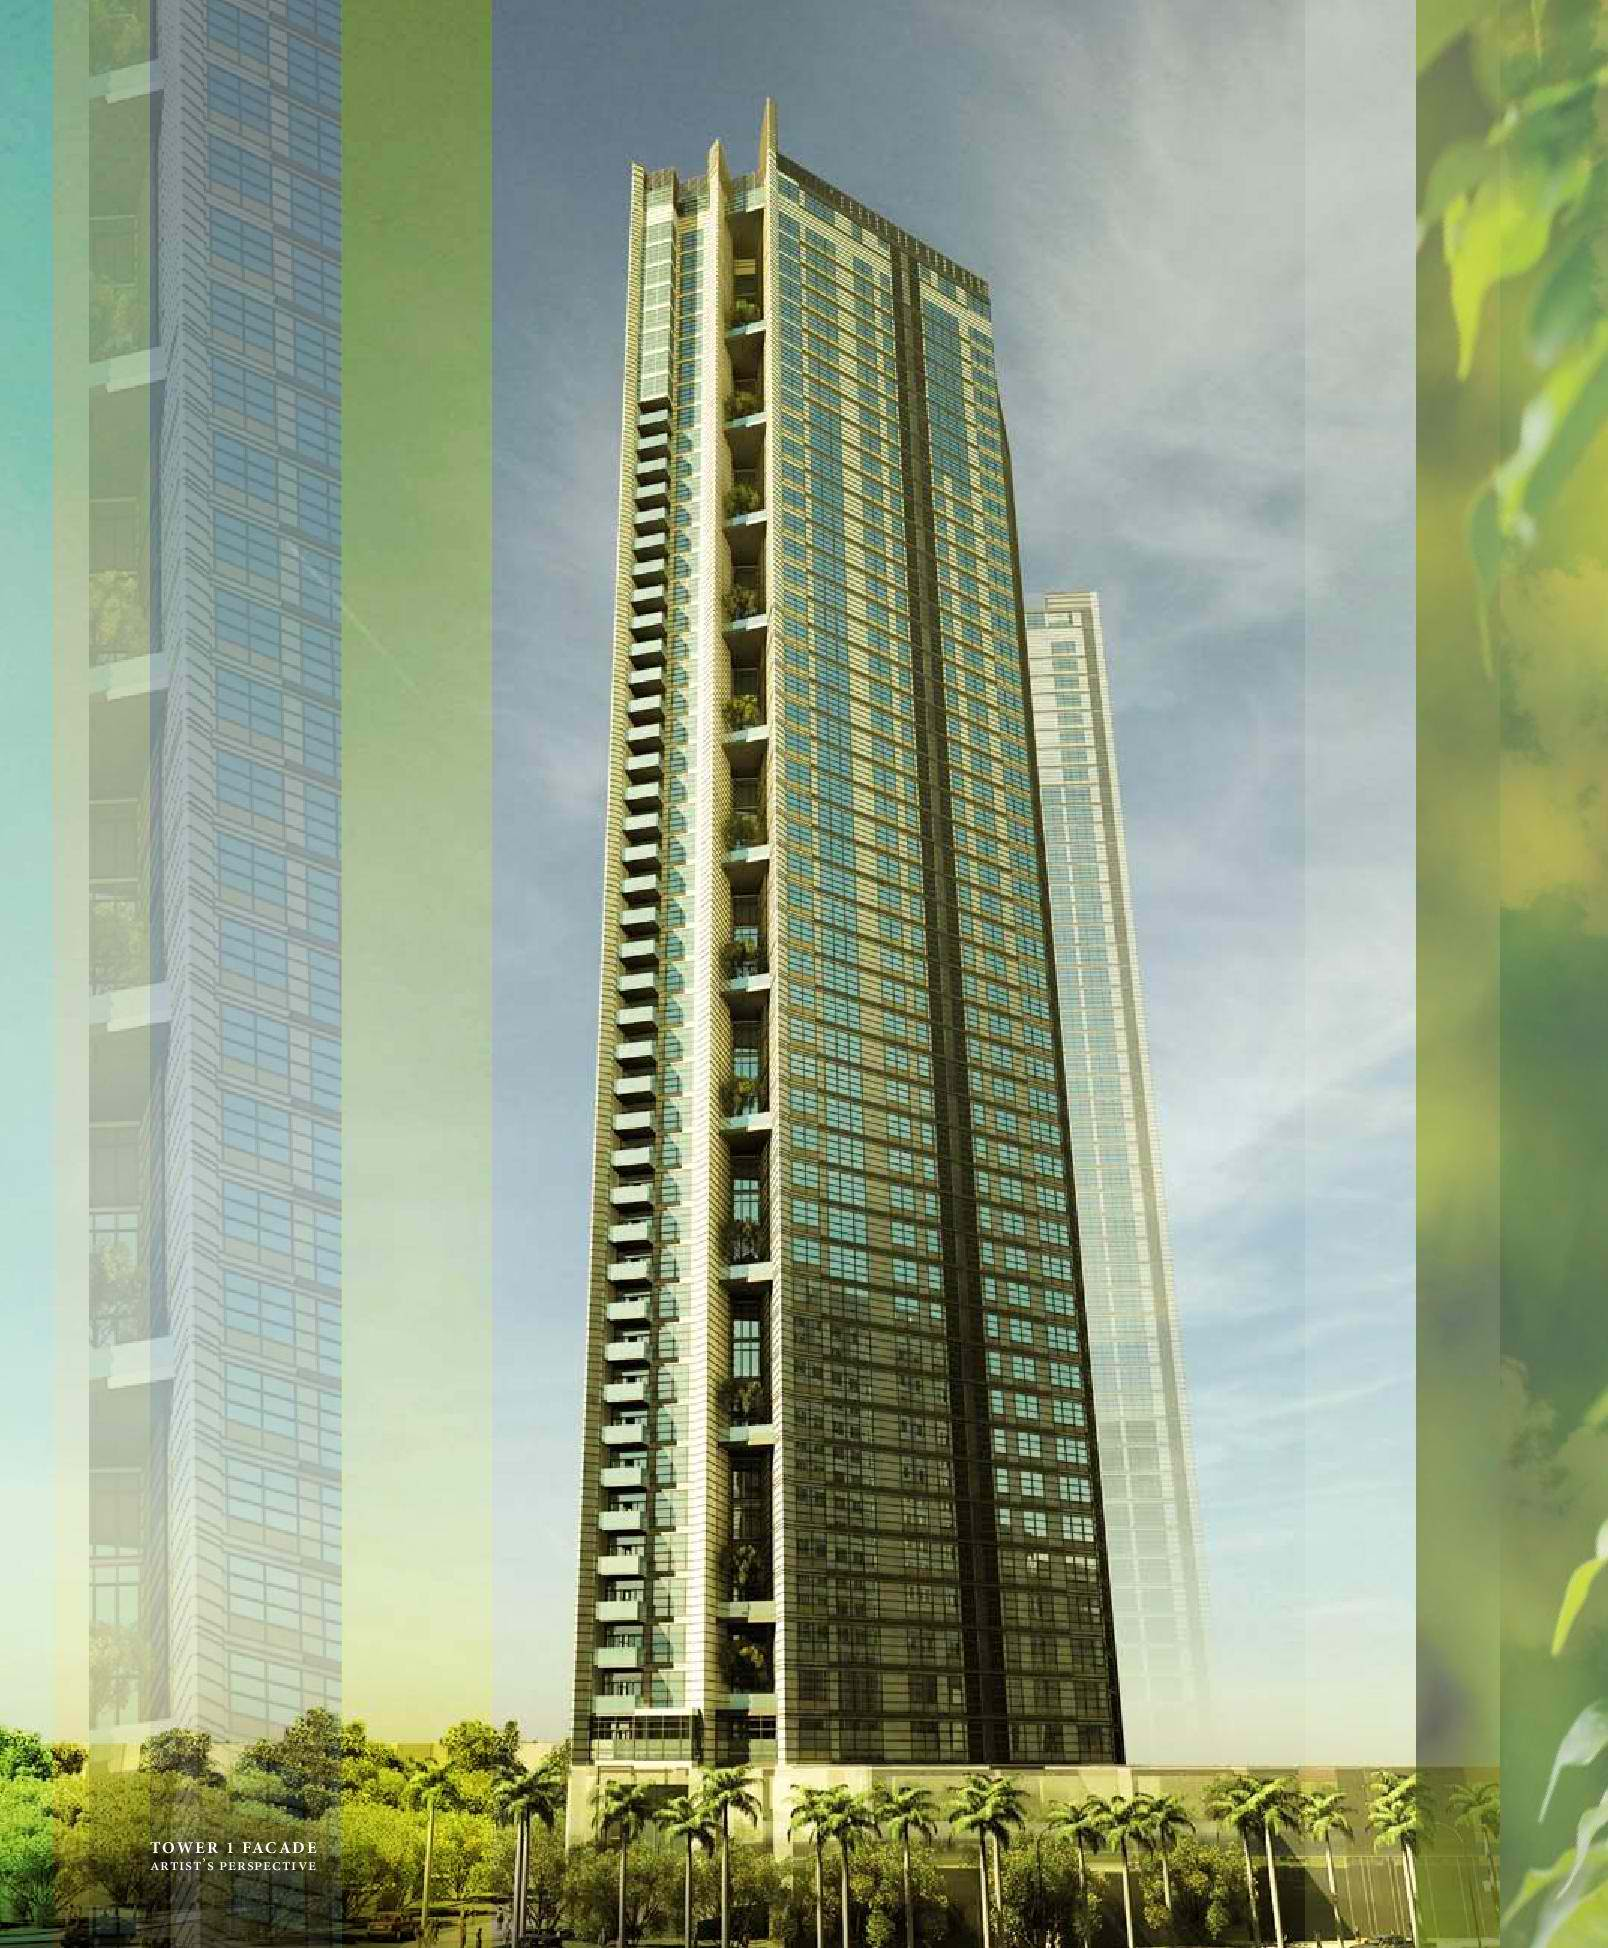 Vertical Garden Living in the heart of Ayala Center